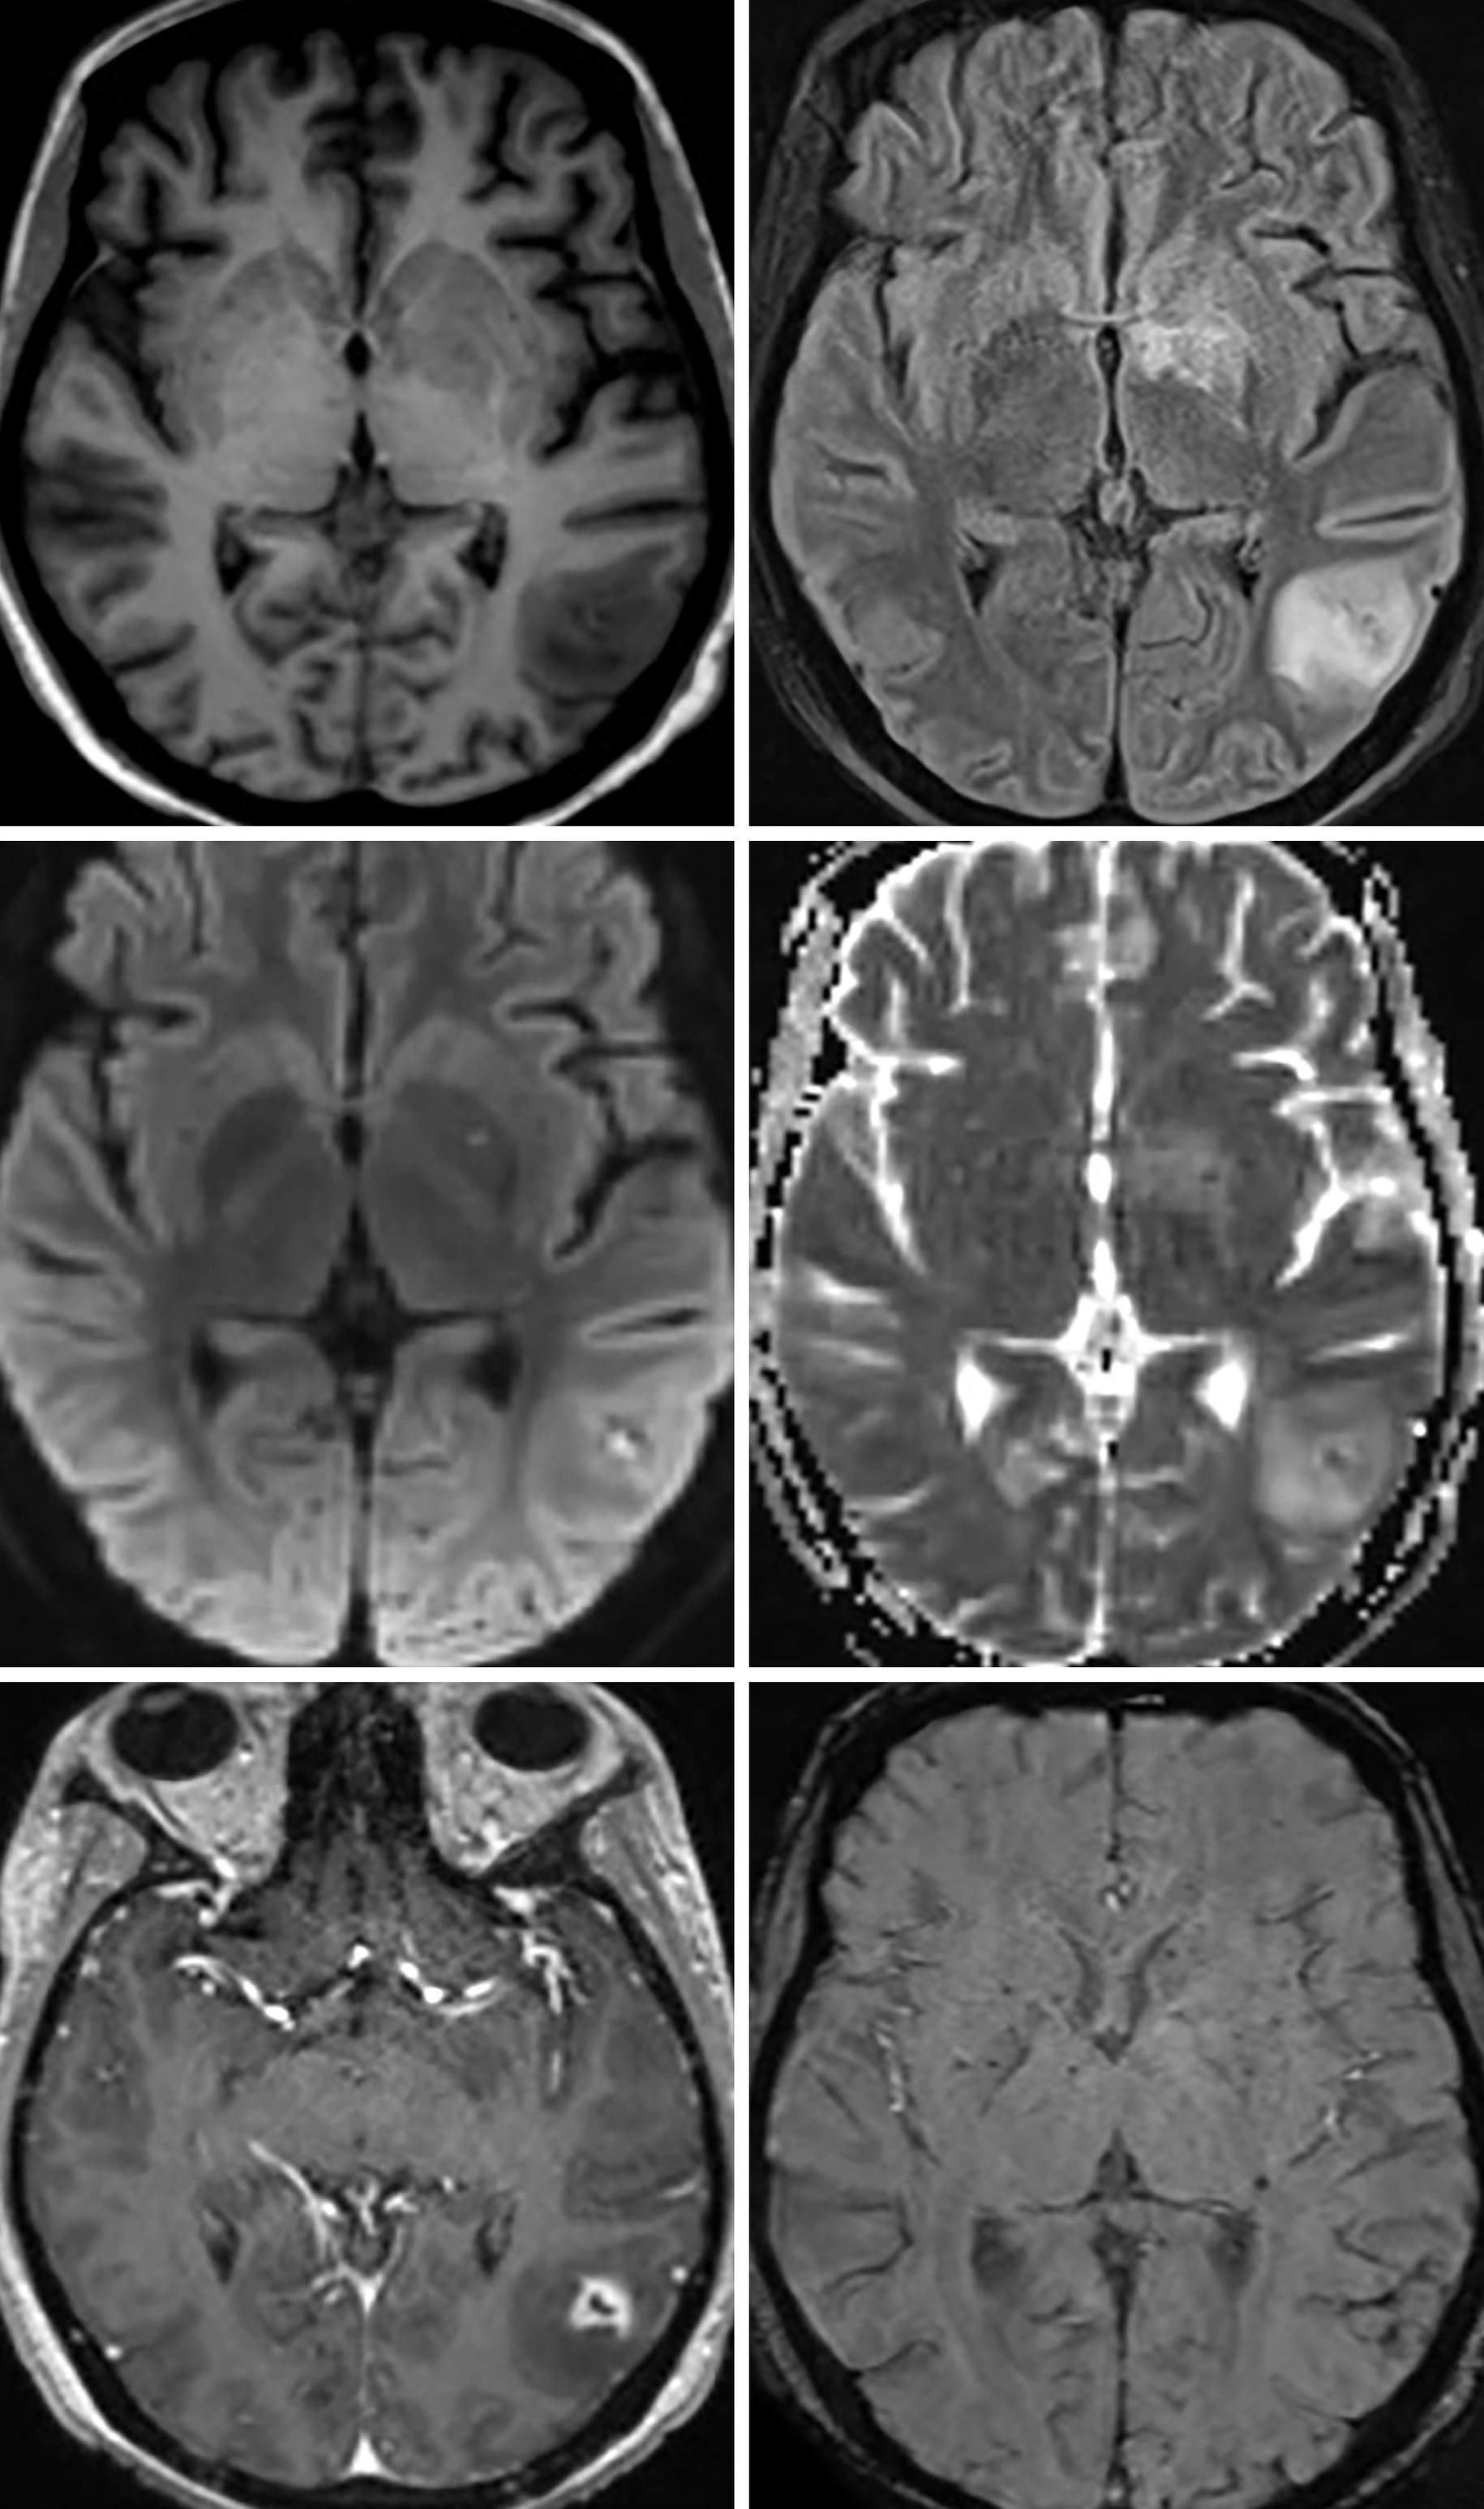 Figure 1: Here we present an HIV patient with low CD4 count who was not taking HAART around the time of imaging. These images demonstrate at least two T1 hypointense (top row left), FLAIR hyperintense (top row right) lesions centered within the left parietal cortex and left basal ganglia. Both lesions demonstrate punctate, central restricted diffusion (middle row). The lesion in the left parietal cortex has a rim of thick enhancement (bottom row left) and there is minimal associated susceptibility artifact (bottom row right) likely reflecting microhemorrhage.